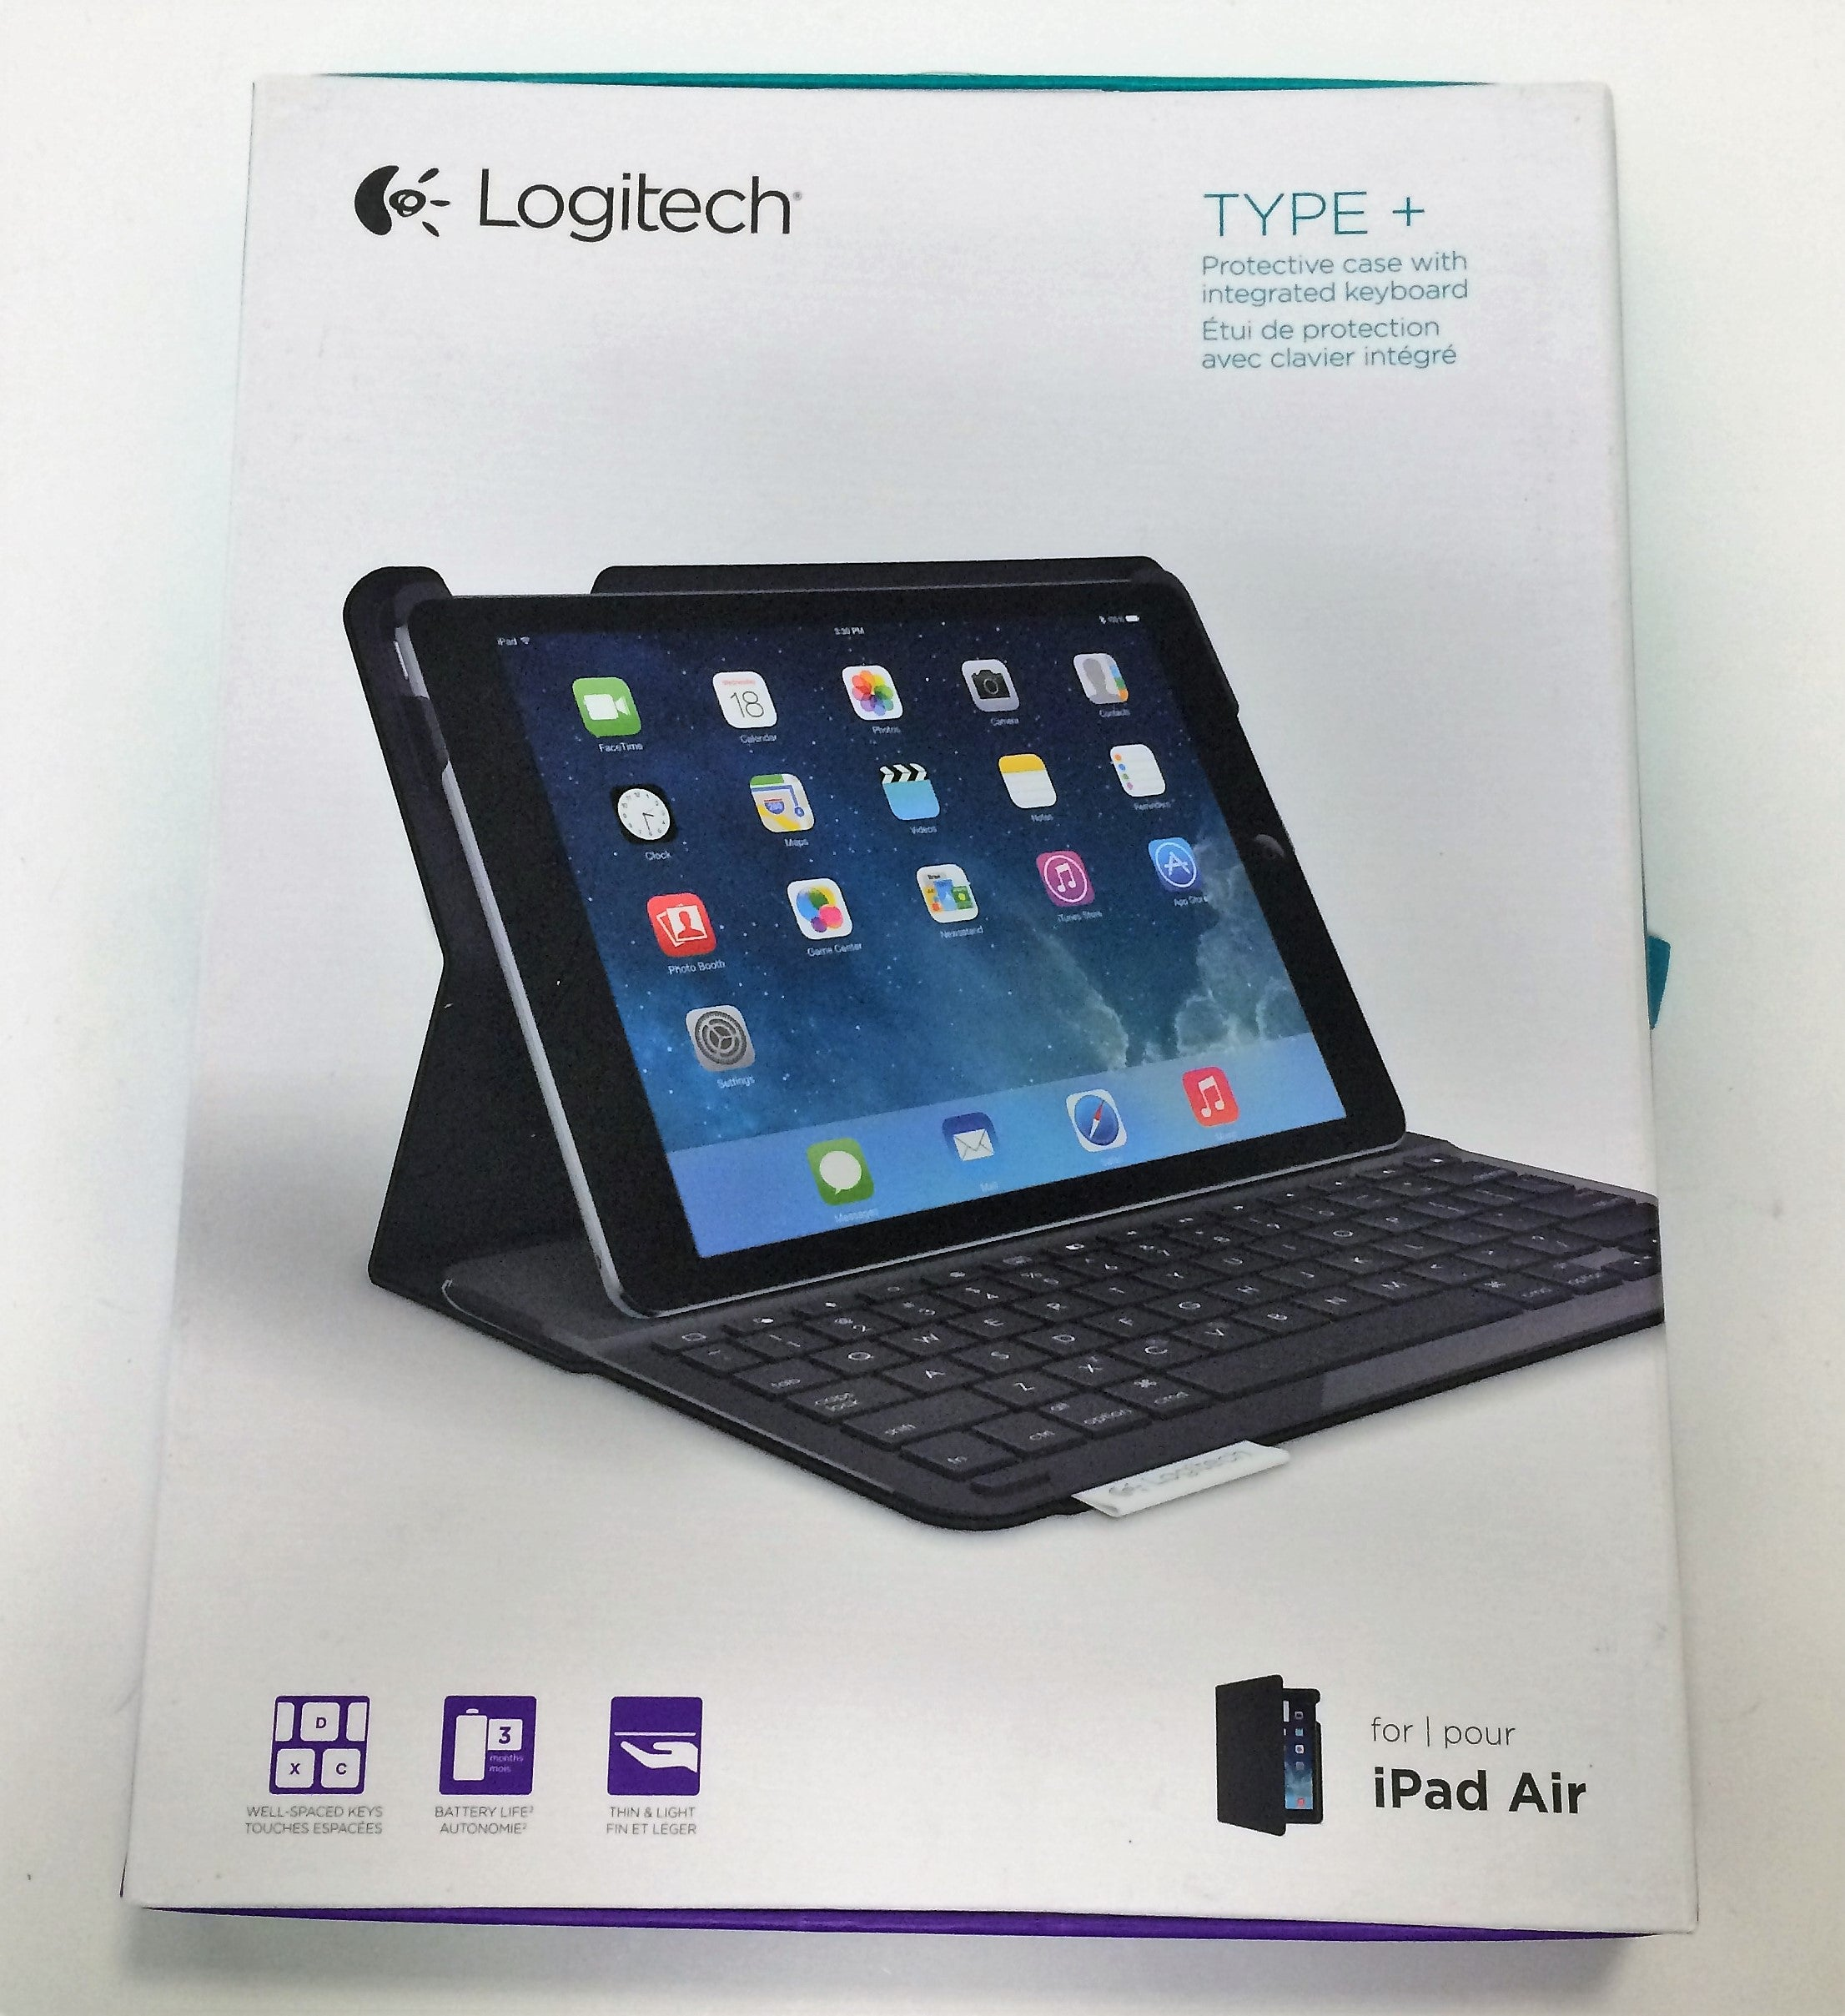 Logitech -Type+ Keyboard Case for Apple iPad Air - Carbon Black Model:920-006909